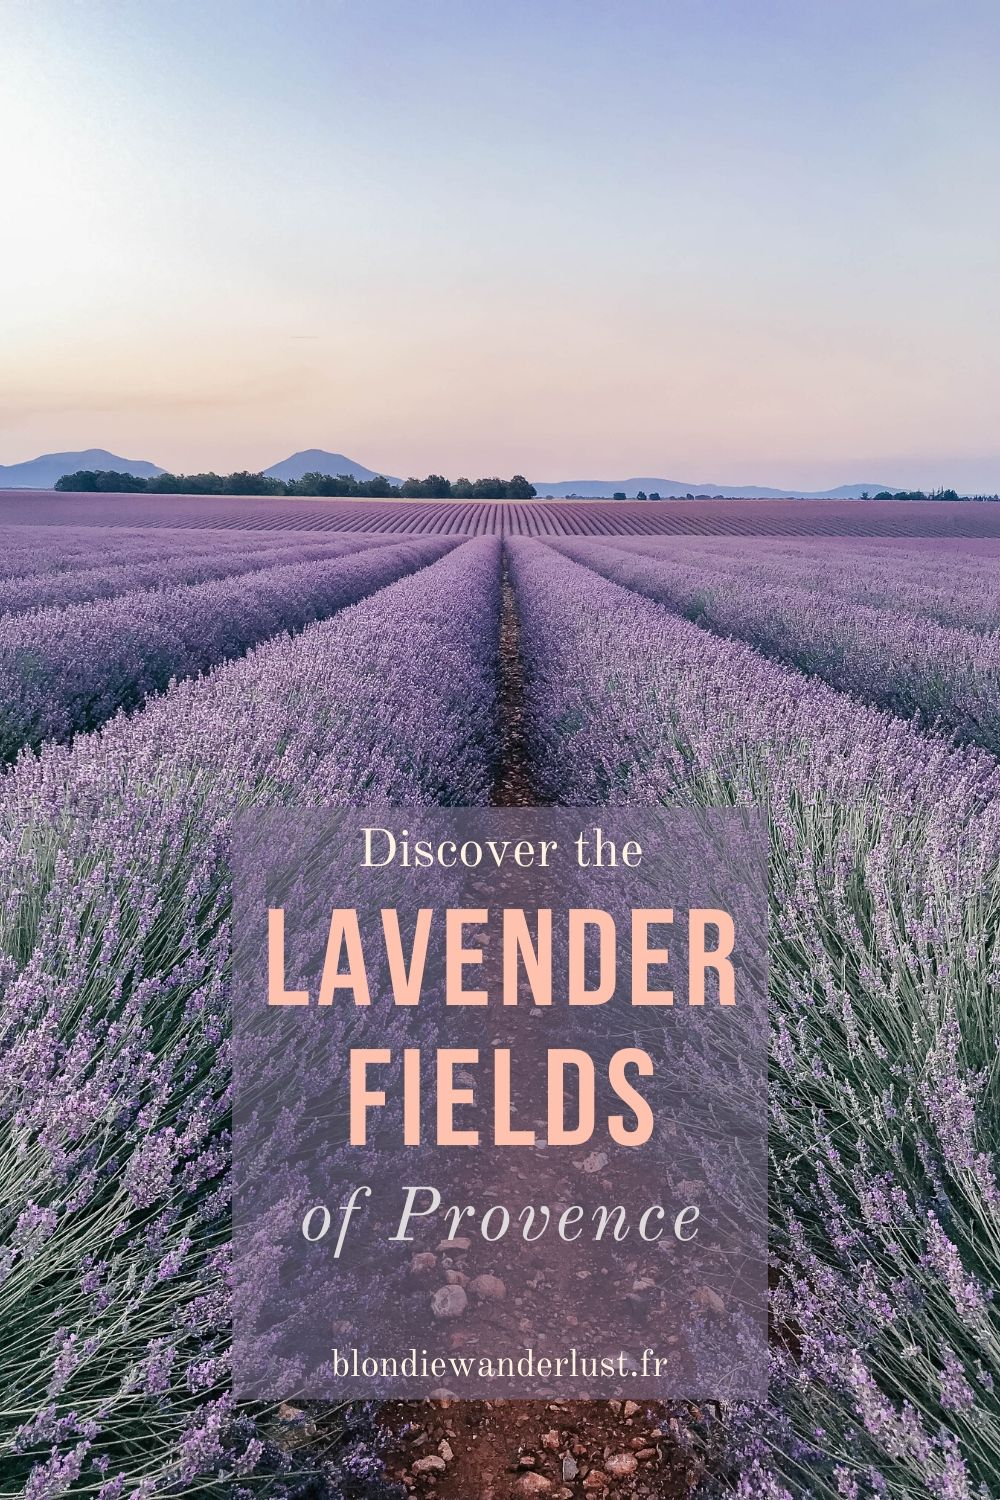 Discover the lavender fields of Provence, the ultimate guide